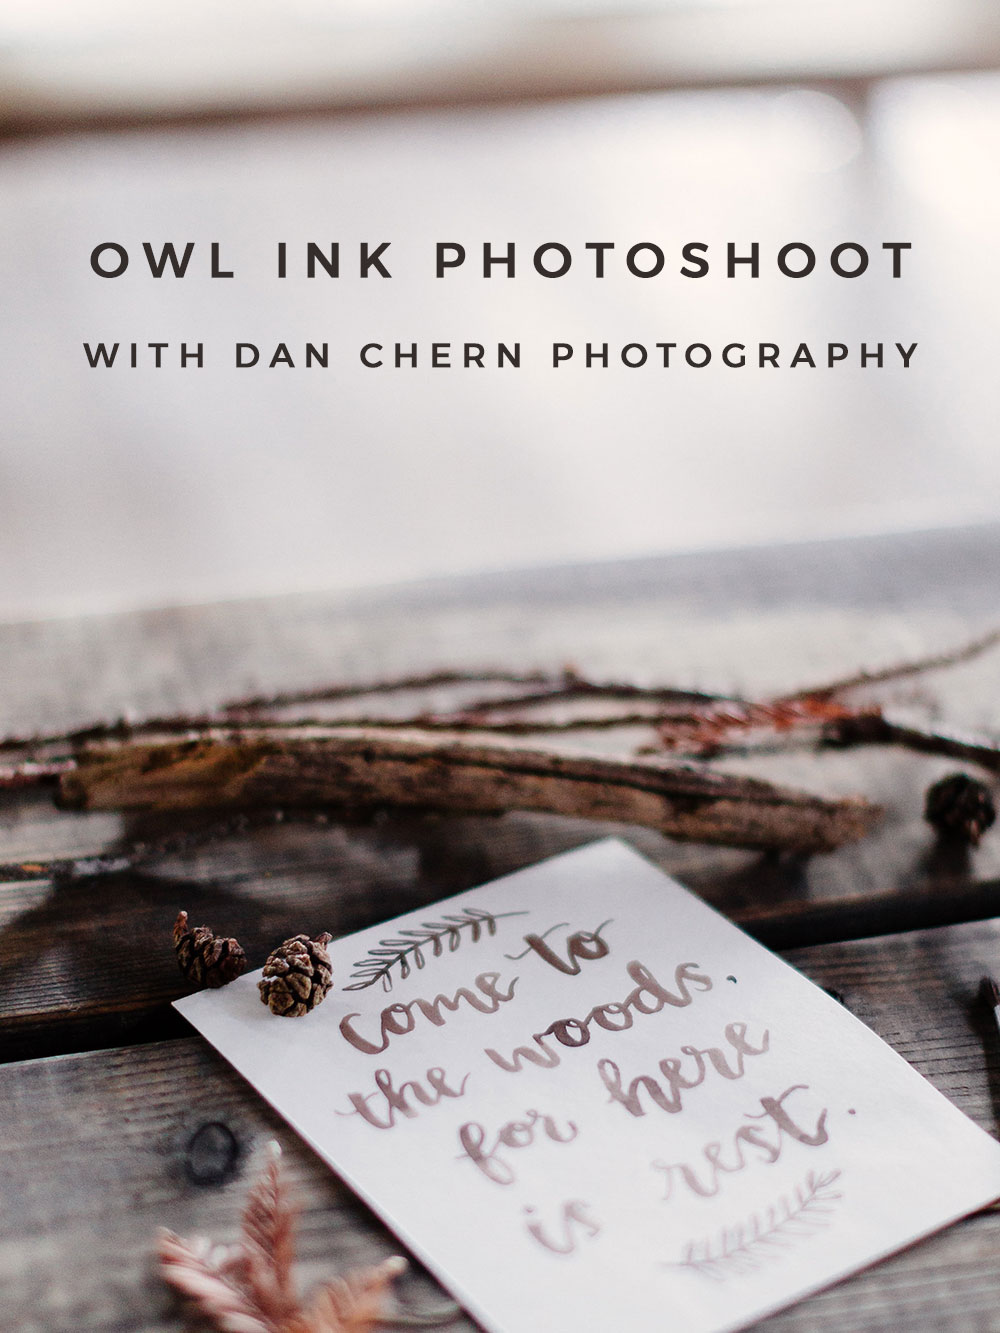 Owl Ink Photoshoot with Dan Chern Photography